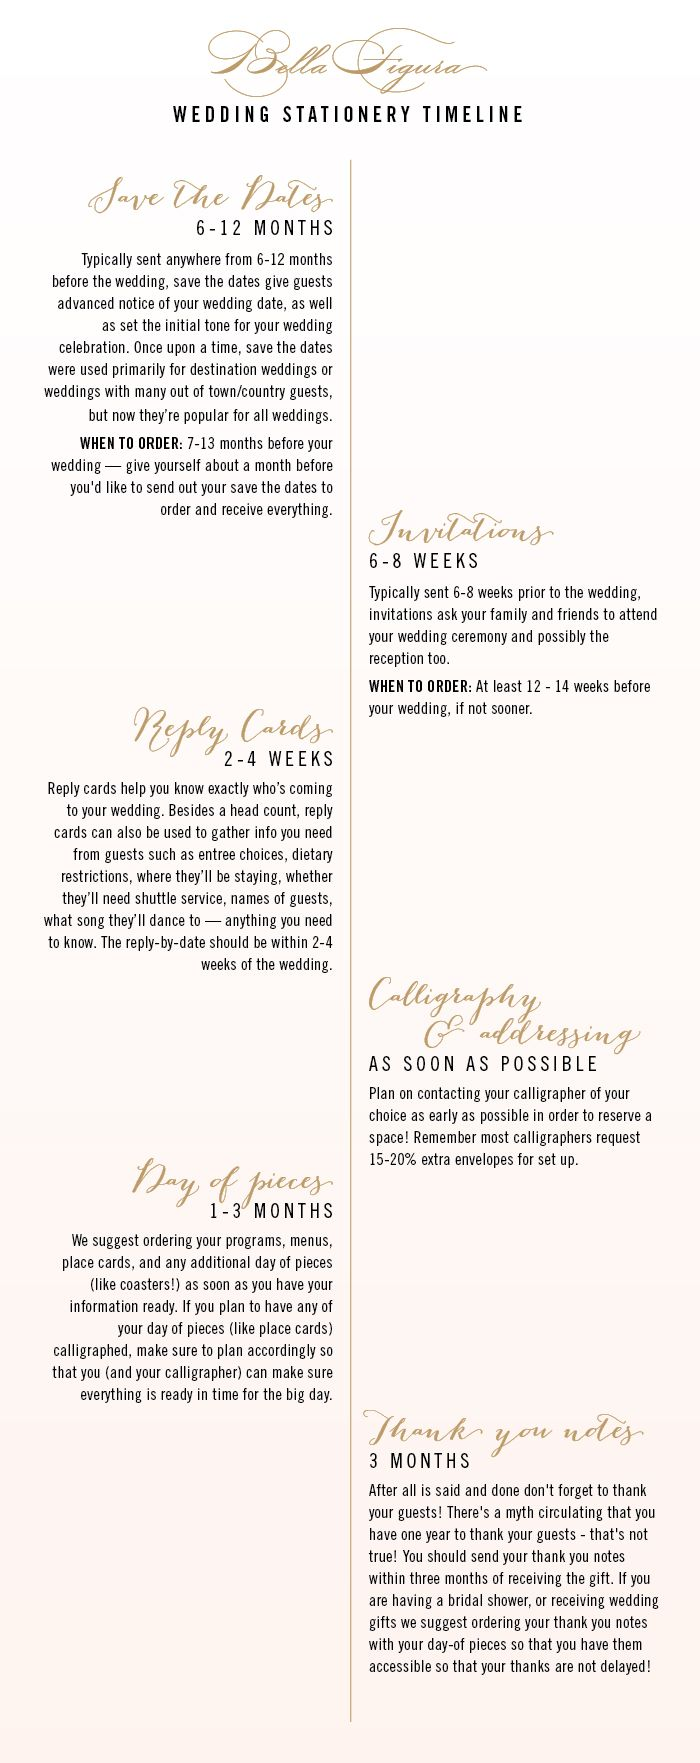 6 Super Helpful Wedding Invitation Checklists - MODwedding